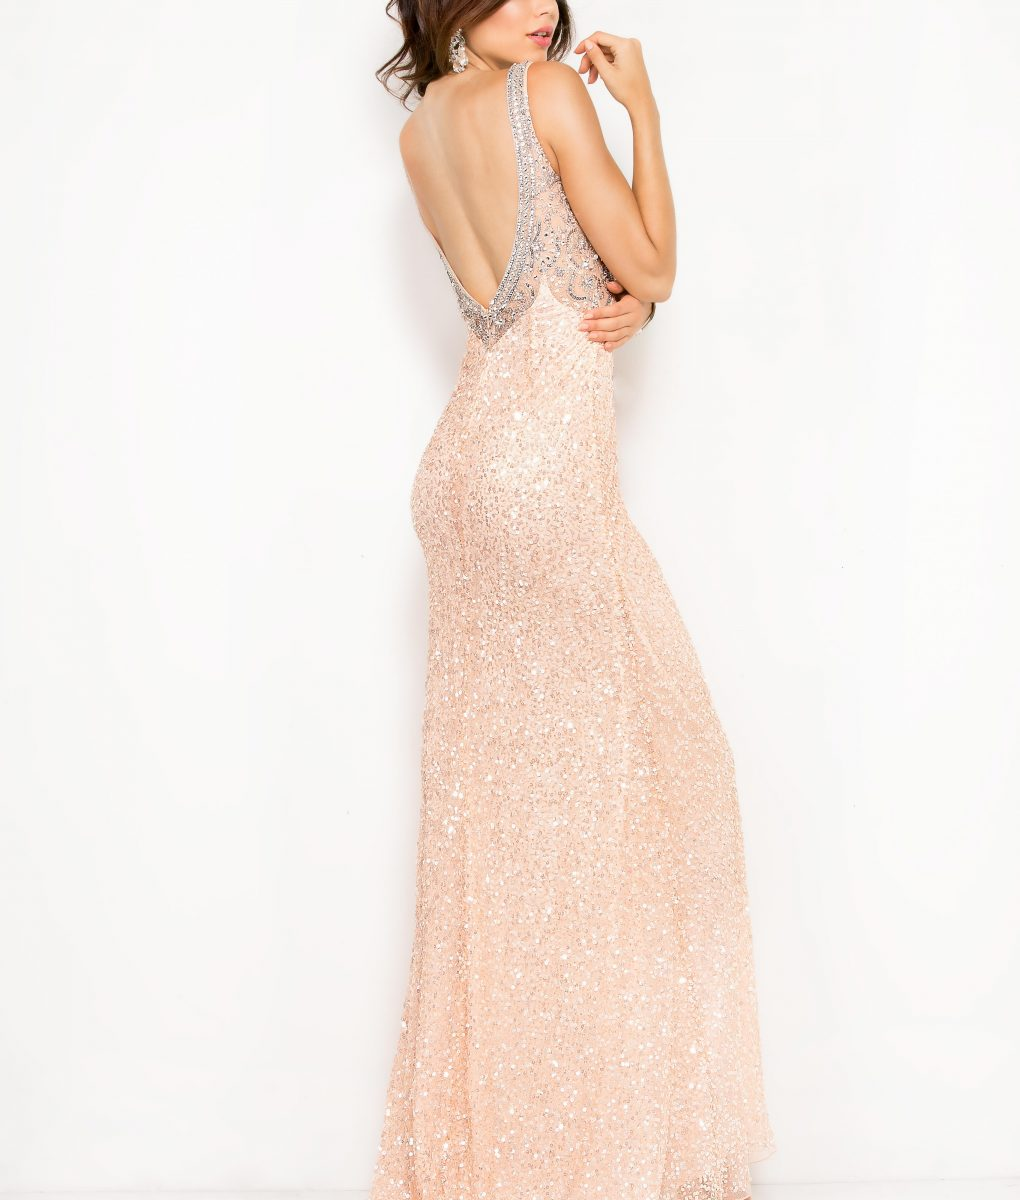 Alila Boutique Blush Sequin Gown by Scala